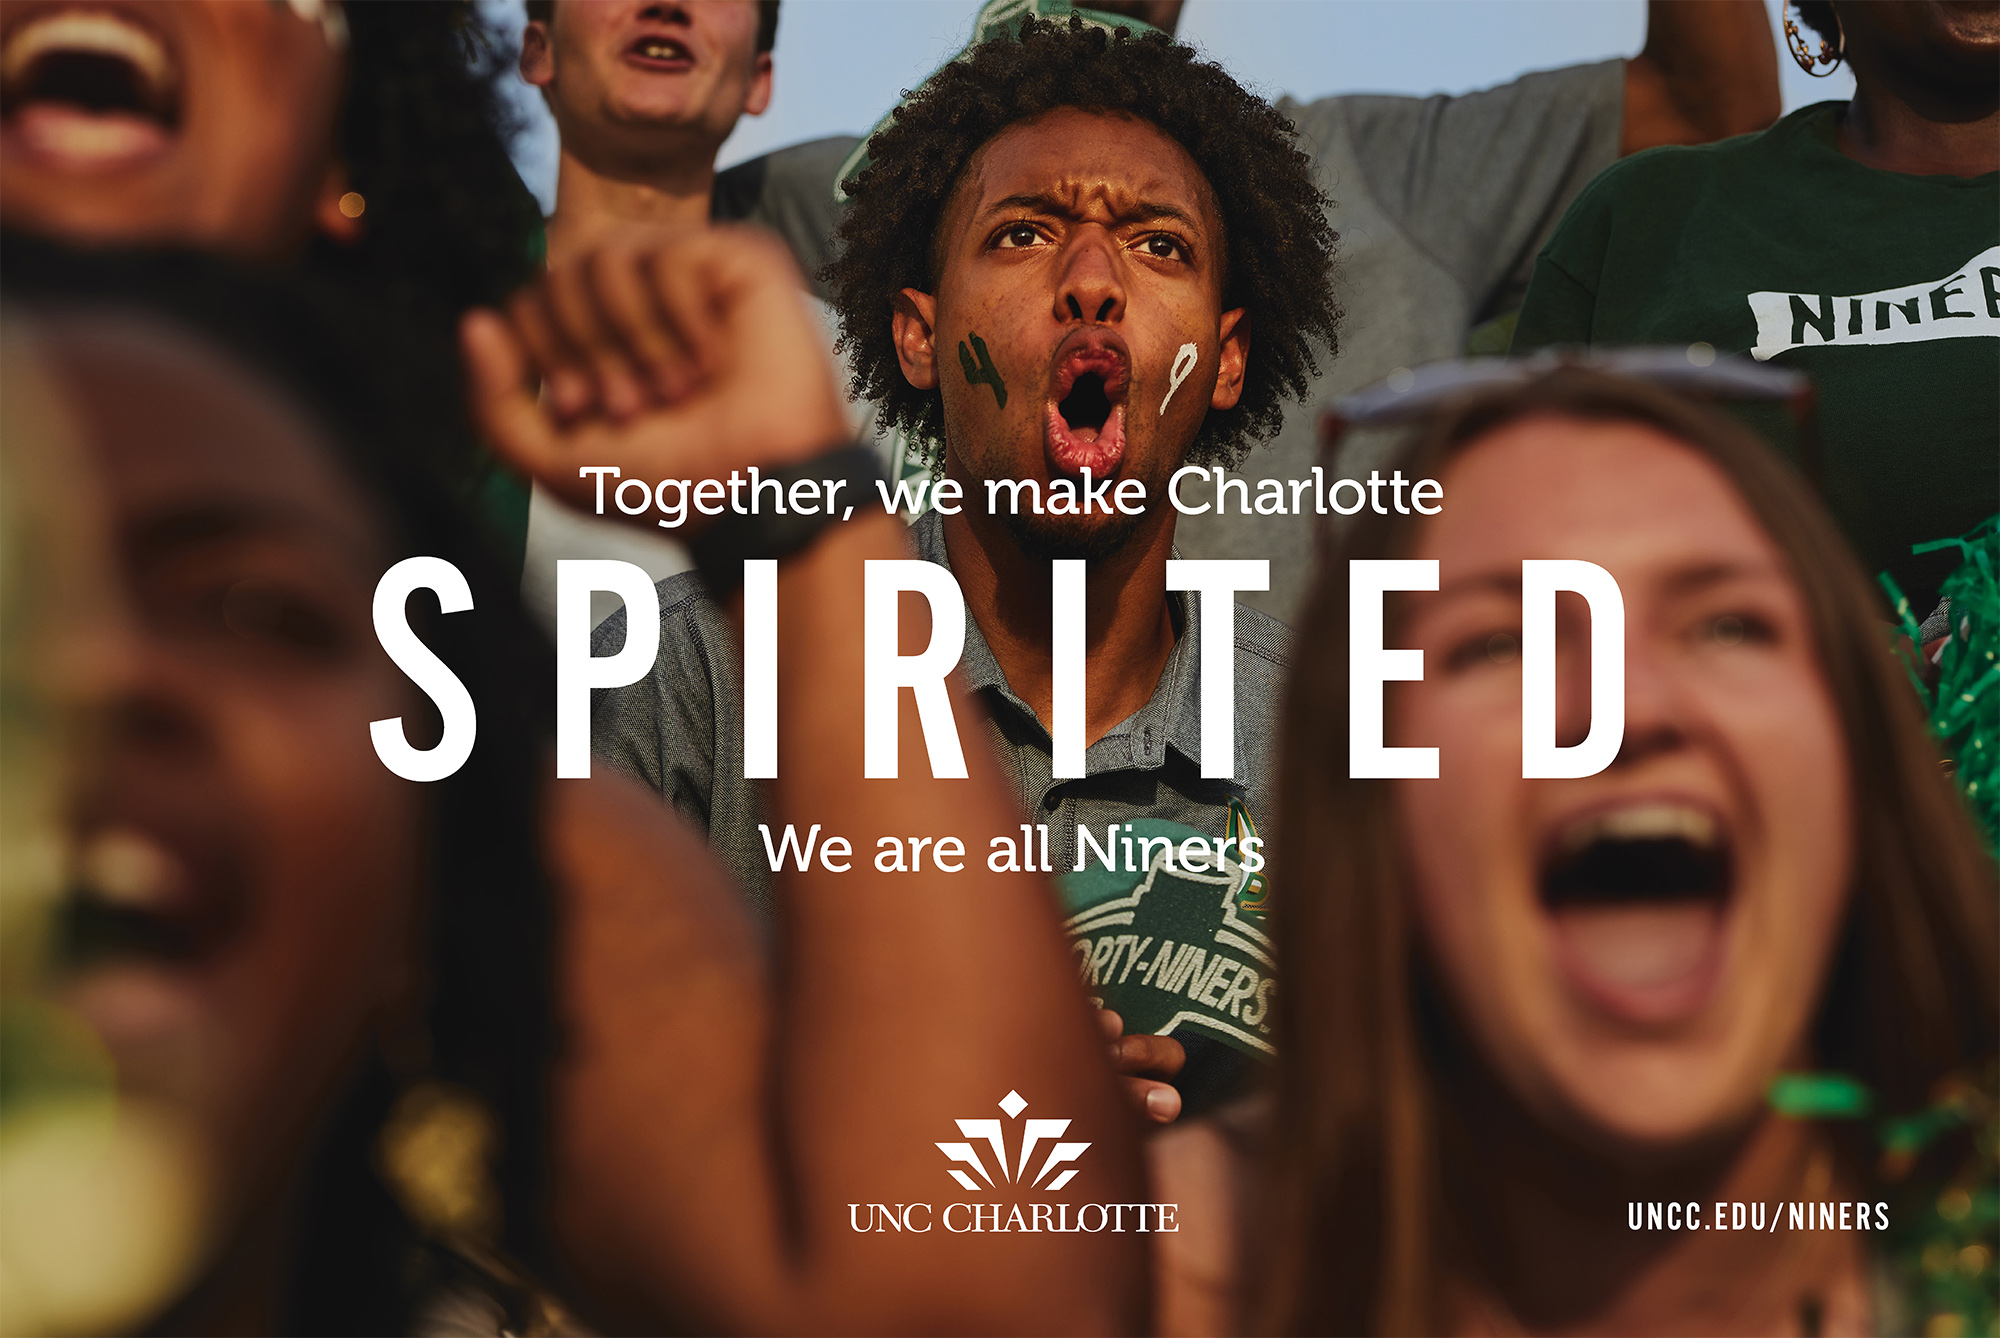 Together, we make Charlotte SPIRITED.